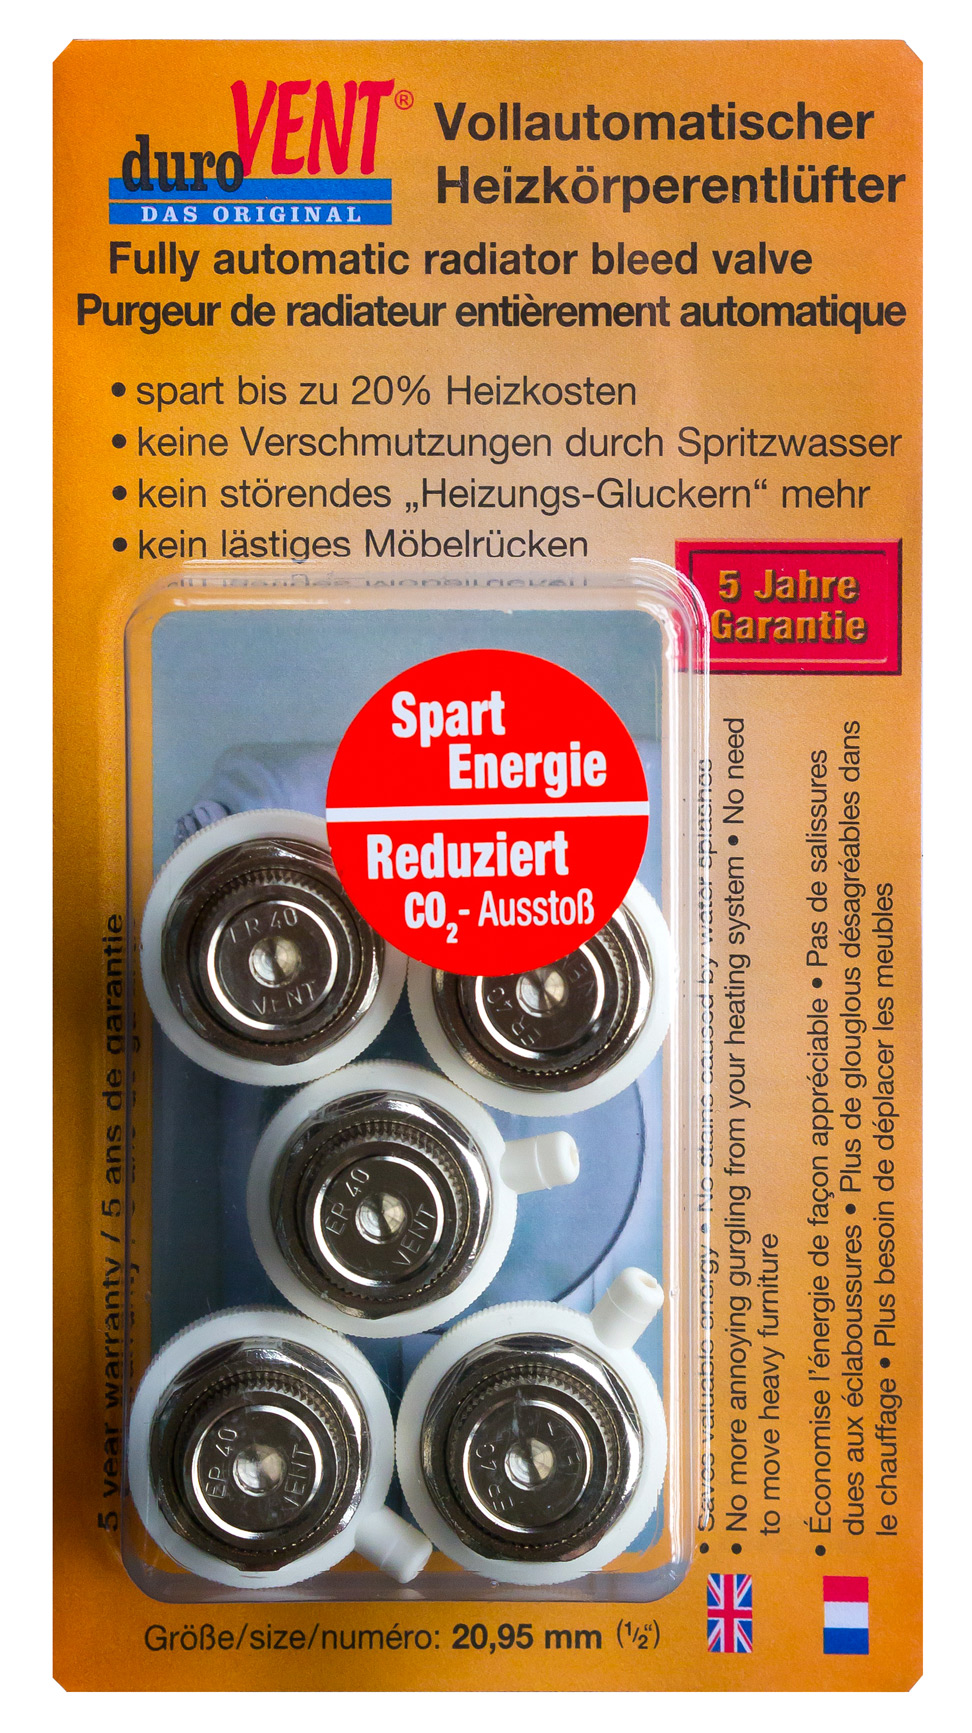 durovent verpackung